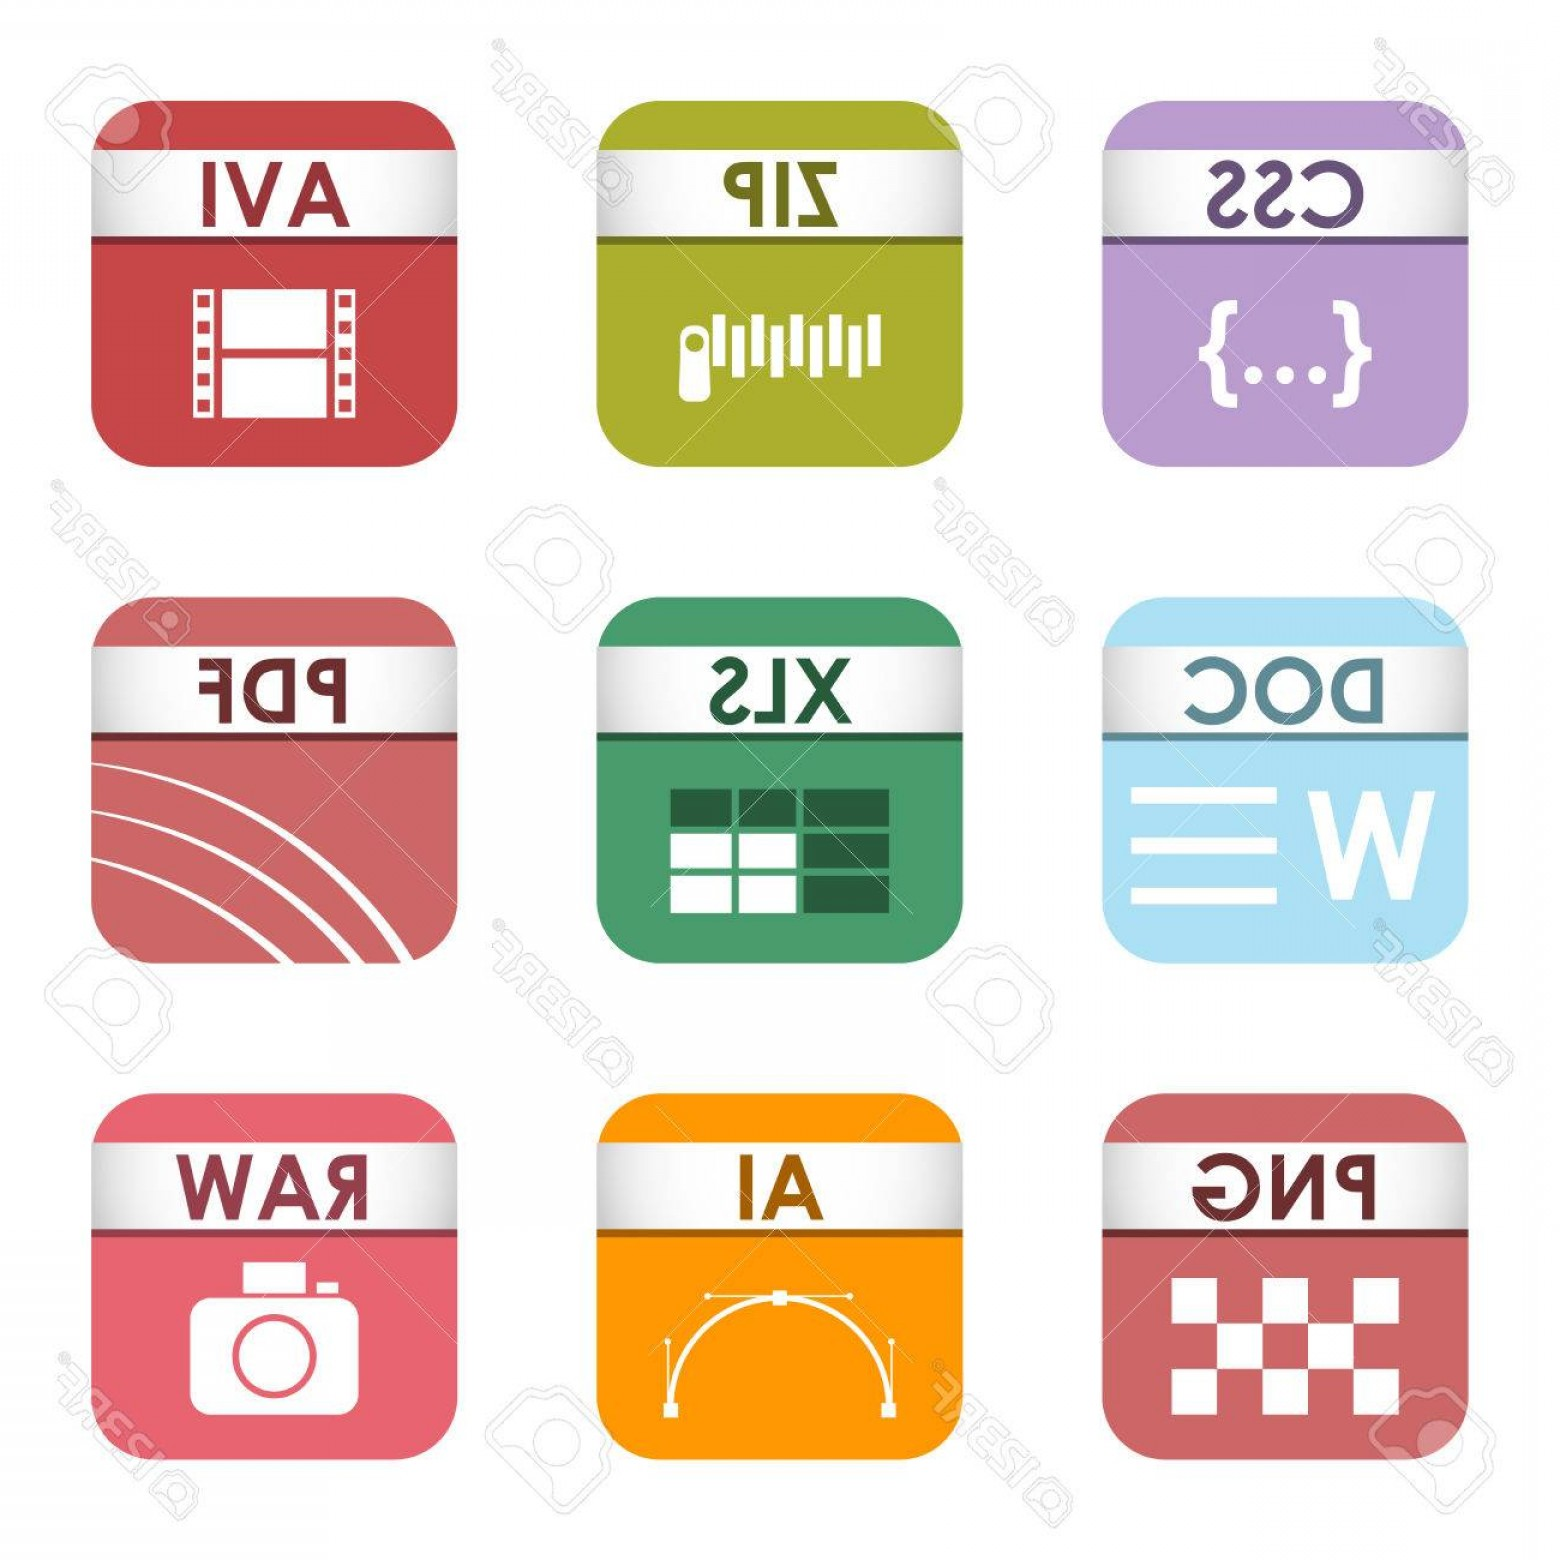 Free Vector File Software: Photostock Vector Simple Vector Square File Types And Formats Labels Icon Set File Type Format Icons Presentation Docu